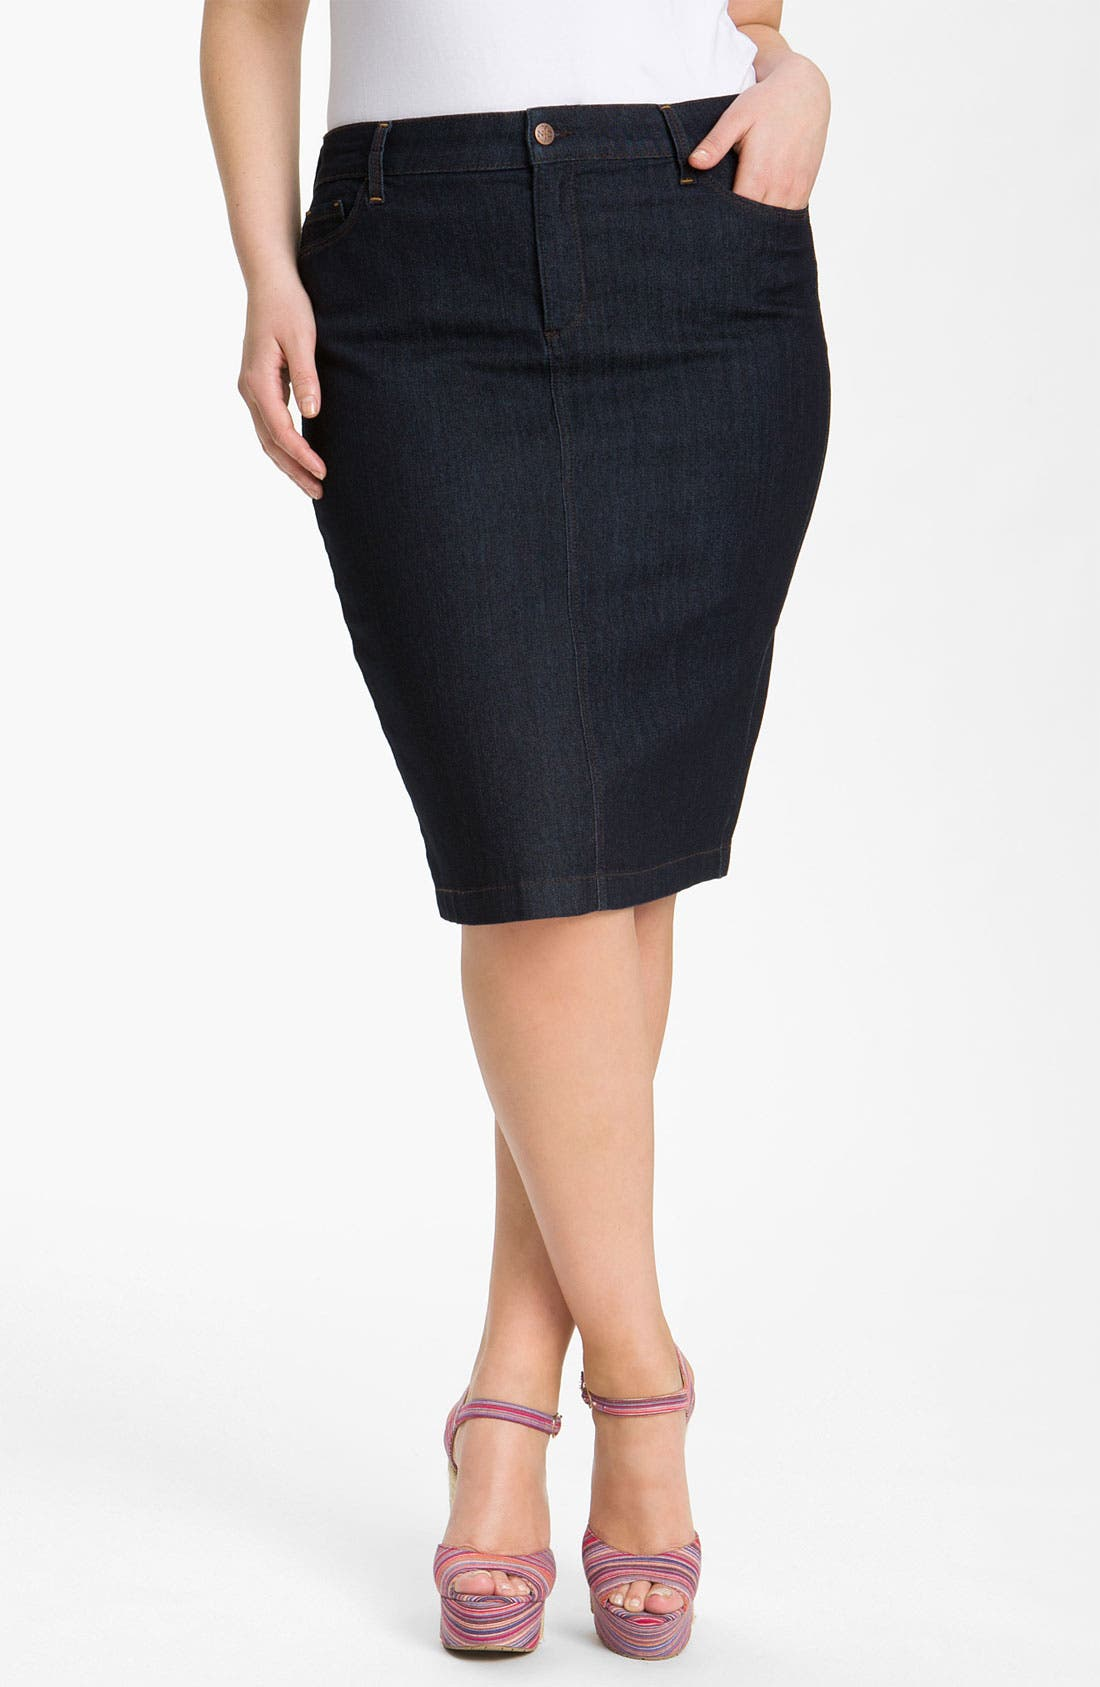 Alternate Image 1 Selected - NYDJ 'Emma' Stretch Twill Skirt (Plus Size)